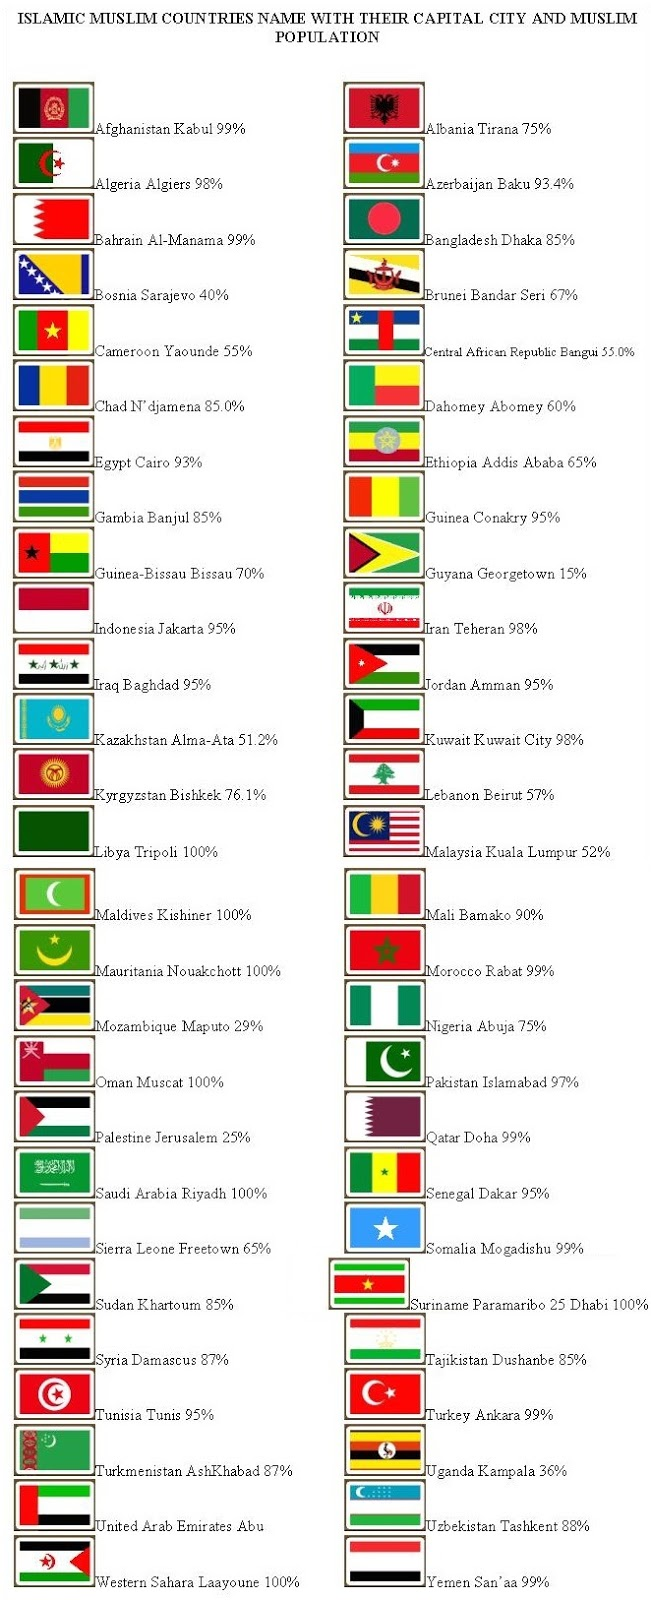 Islamic Muslim Countries Name with Their Capital City and Muslim Population percentage